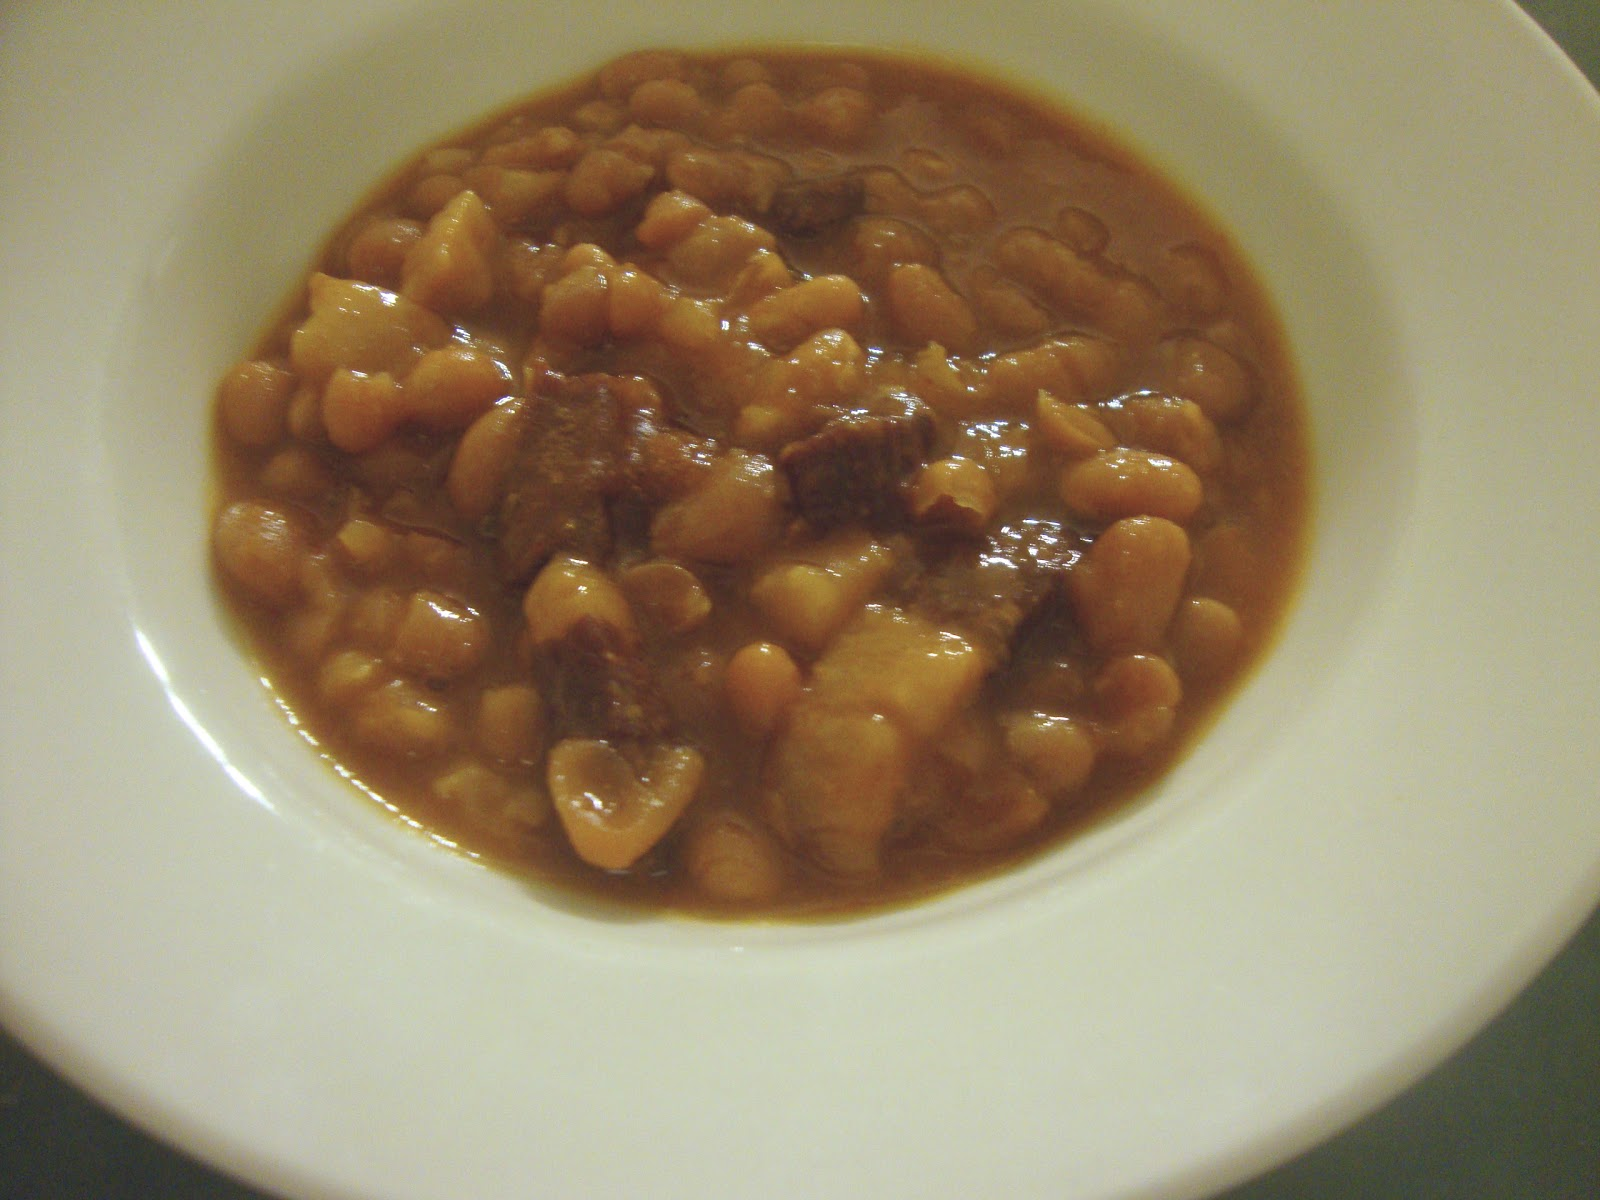 Busy Mom's Slow Cooker Adventures: Slow Cooked Baked Beans